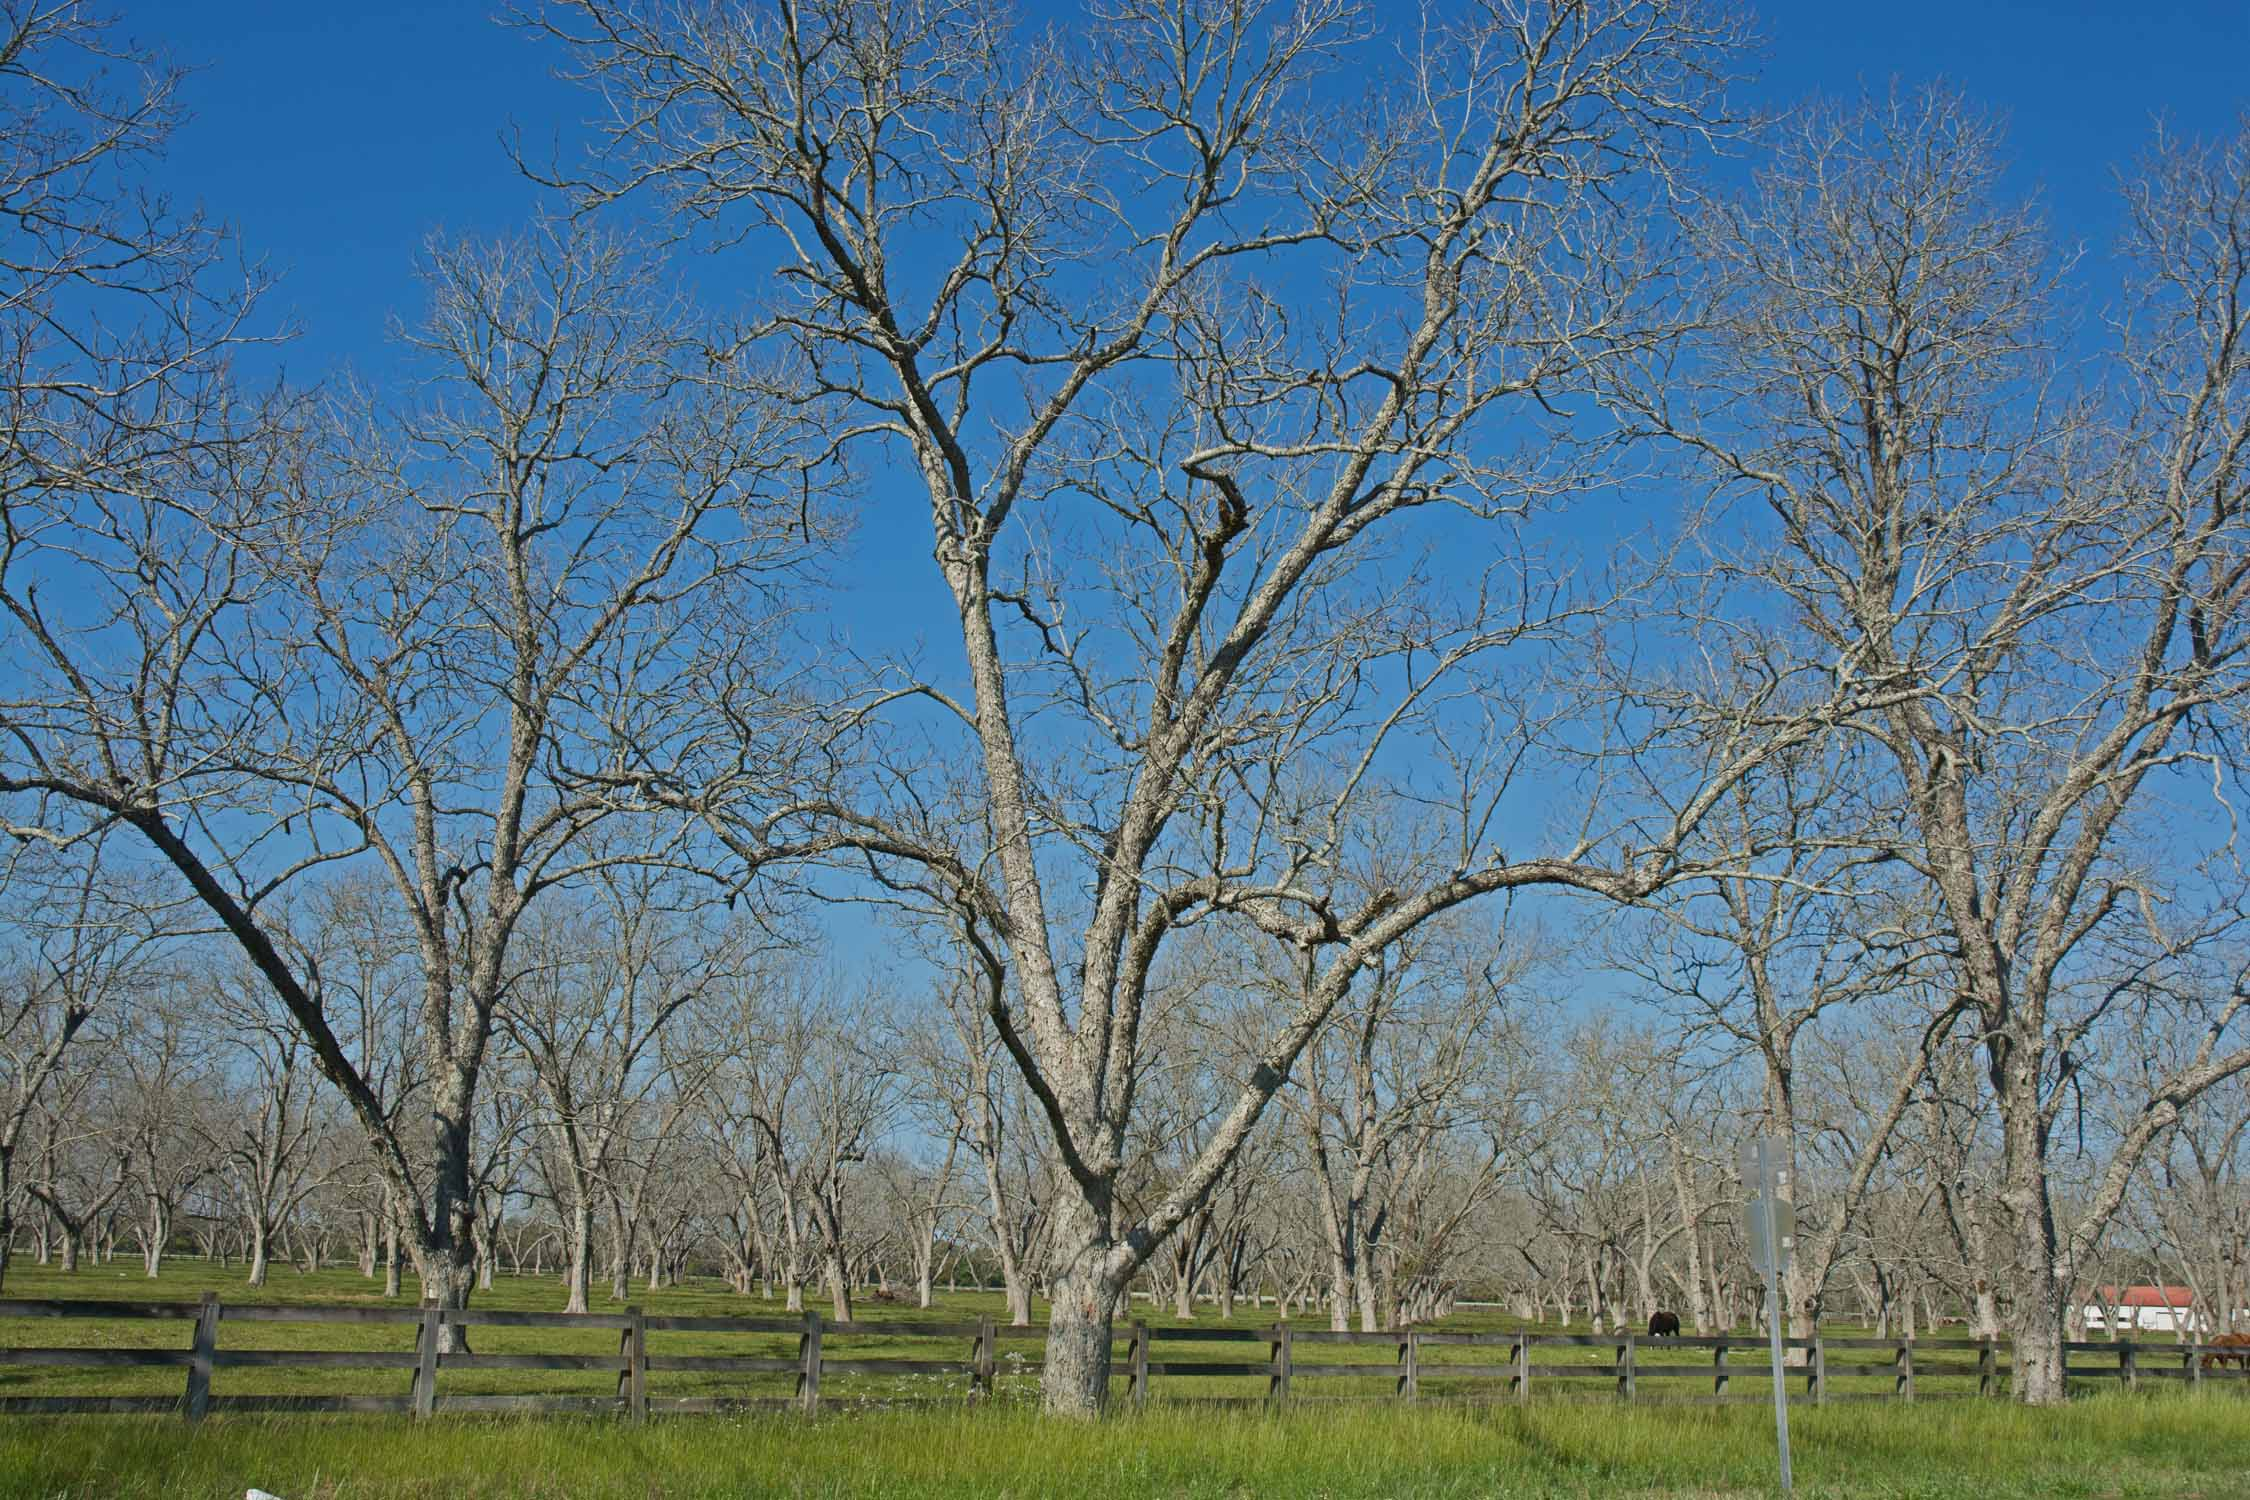 The drive out of Fairhope is through Pecan grove country.  Still March so no leaves yet.